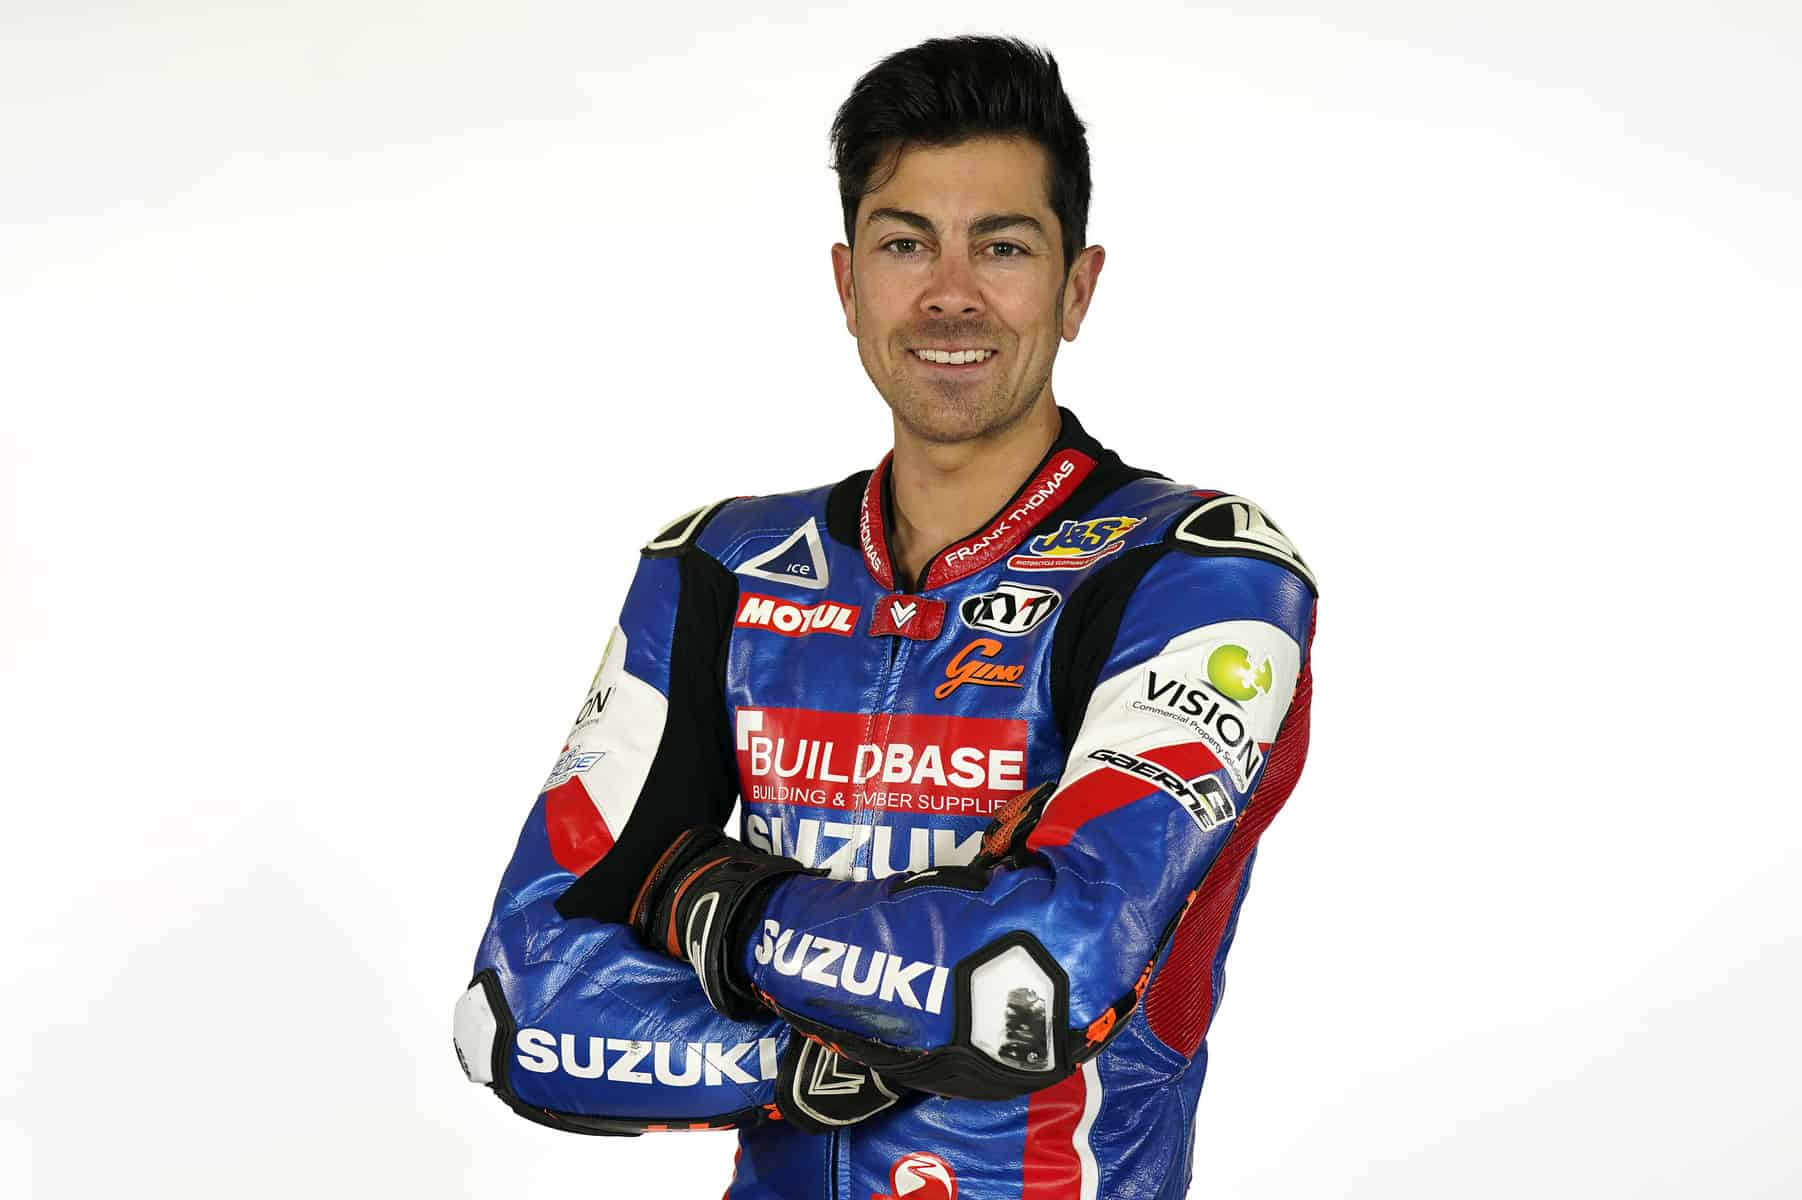 Gino Rea: an English professional motorcycle racer of Italian descent